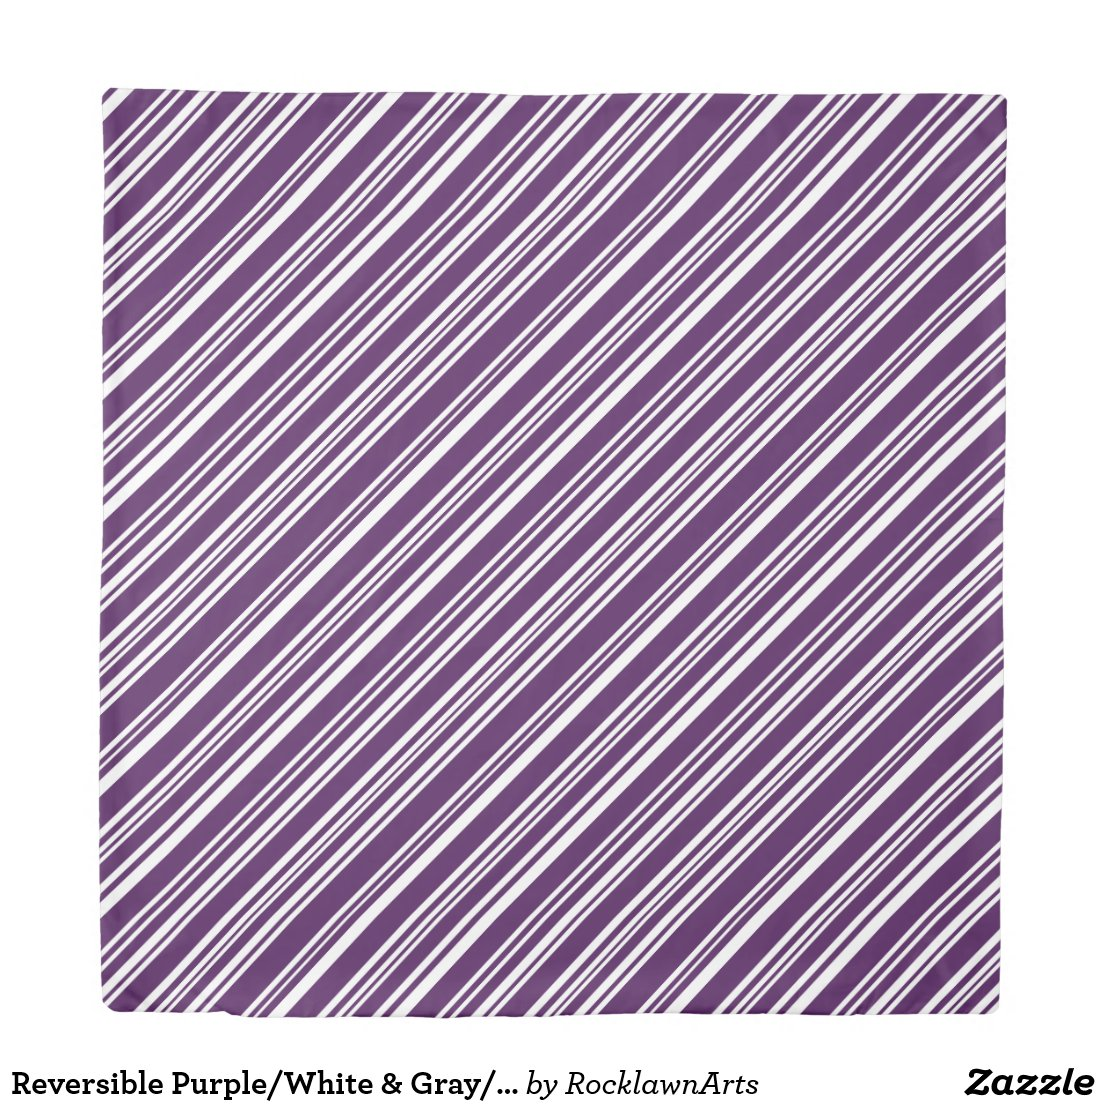 Reversible Purple/White & Gray/Black/White Stripes Duvet Cover